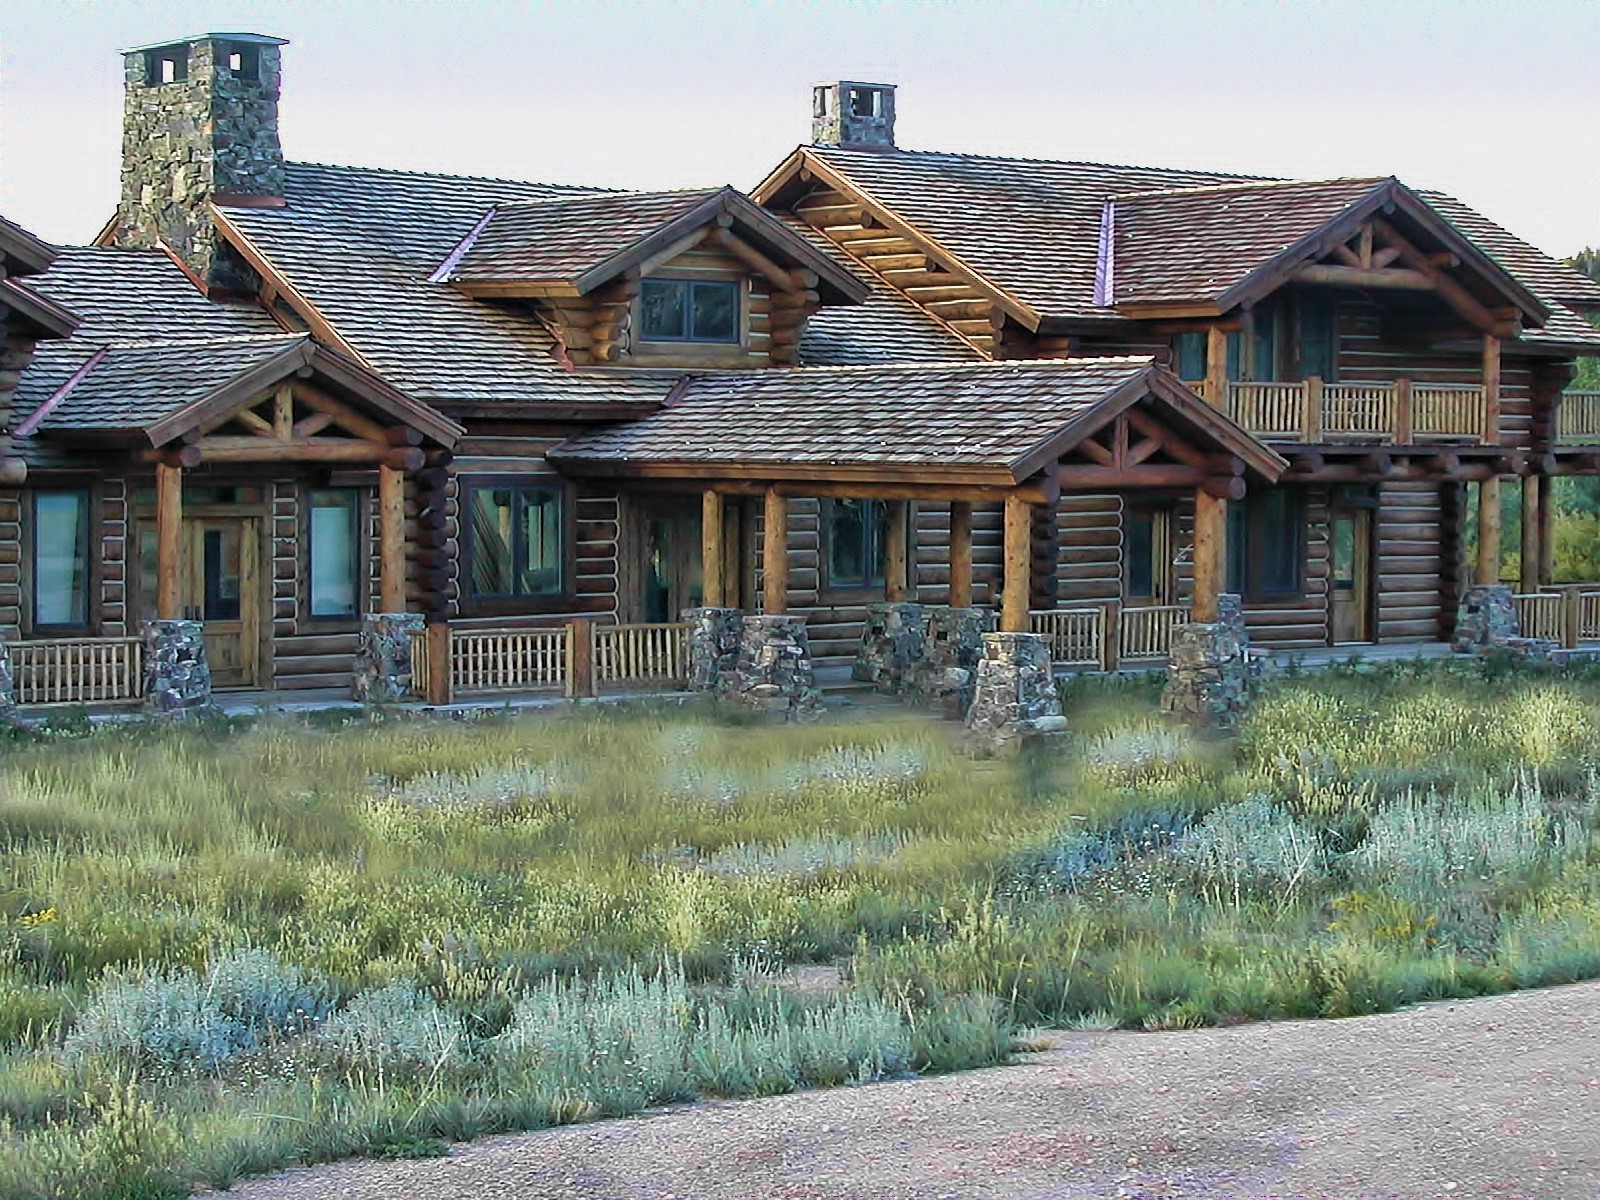 Grein chink style log Centennial Wyoming custom home builder handcrafted details (2) - Deerwood Log Homes - Custom Built Homes and Cabins - Laramie, Wyoming and The Centennial Valley - deer-wood.com - (307) 742-6554